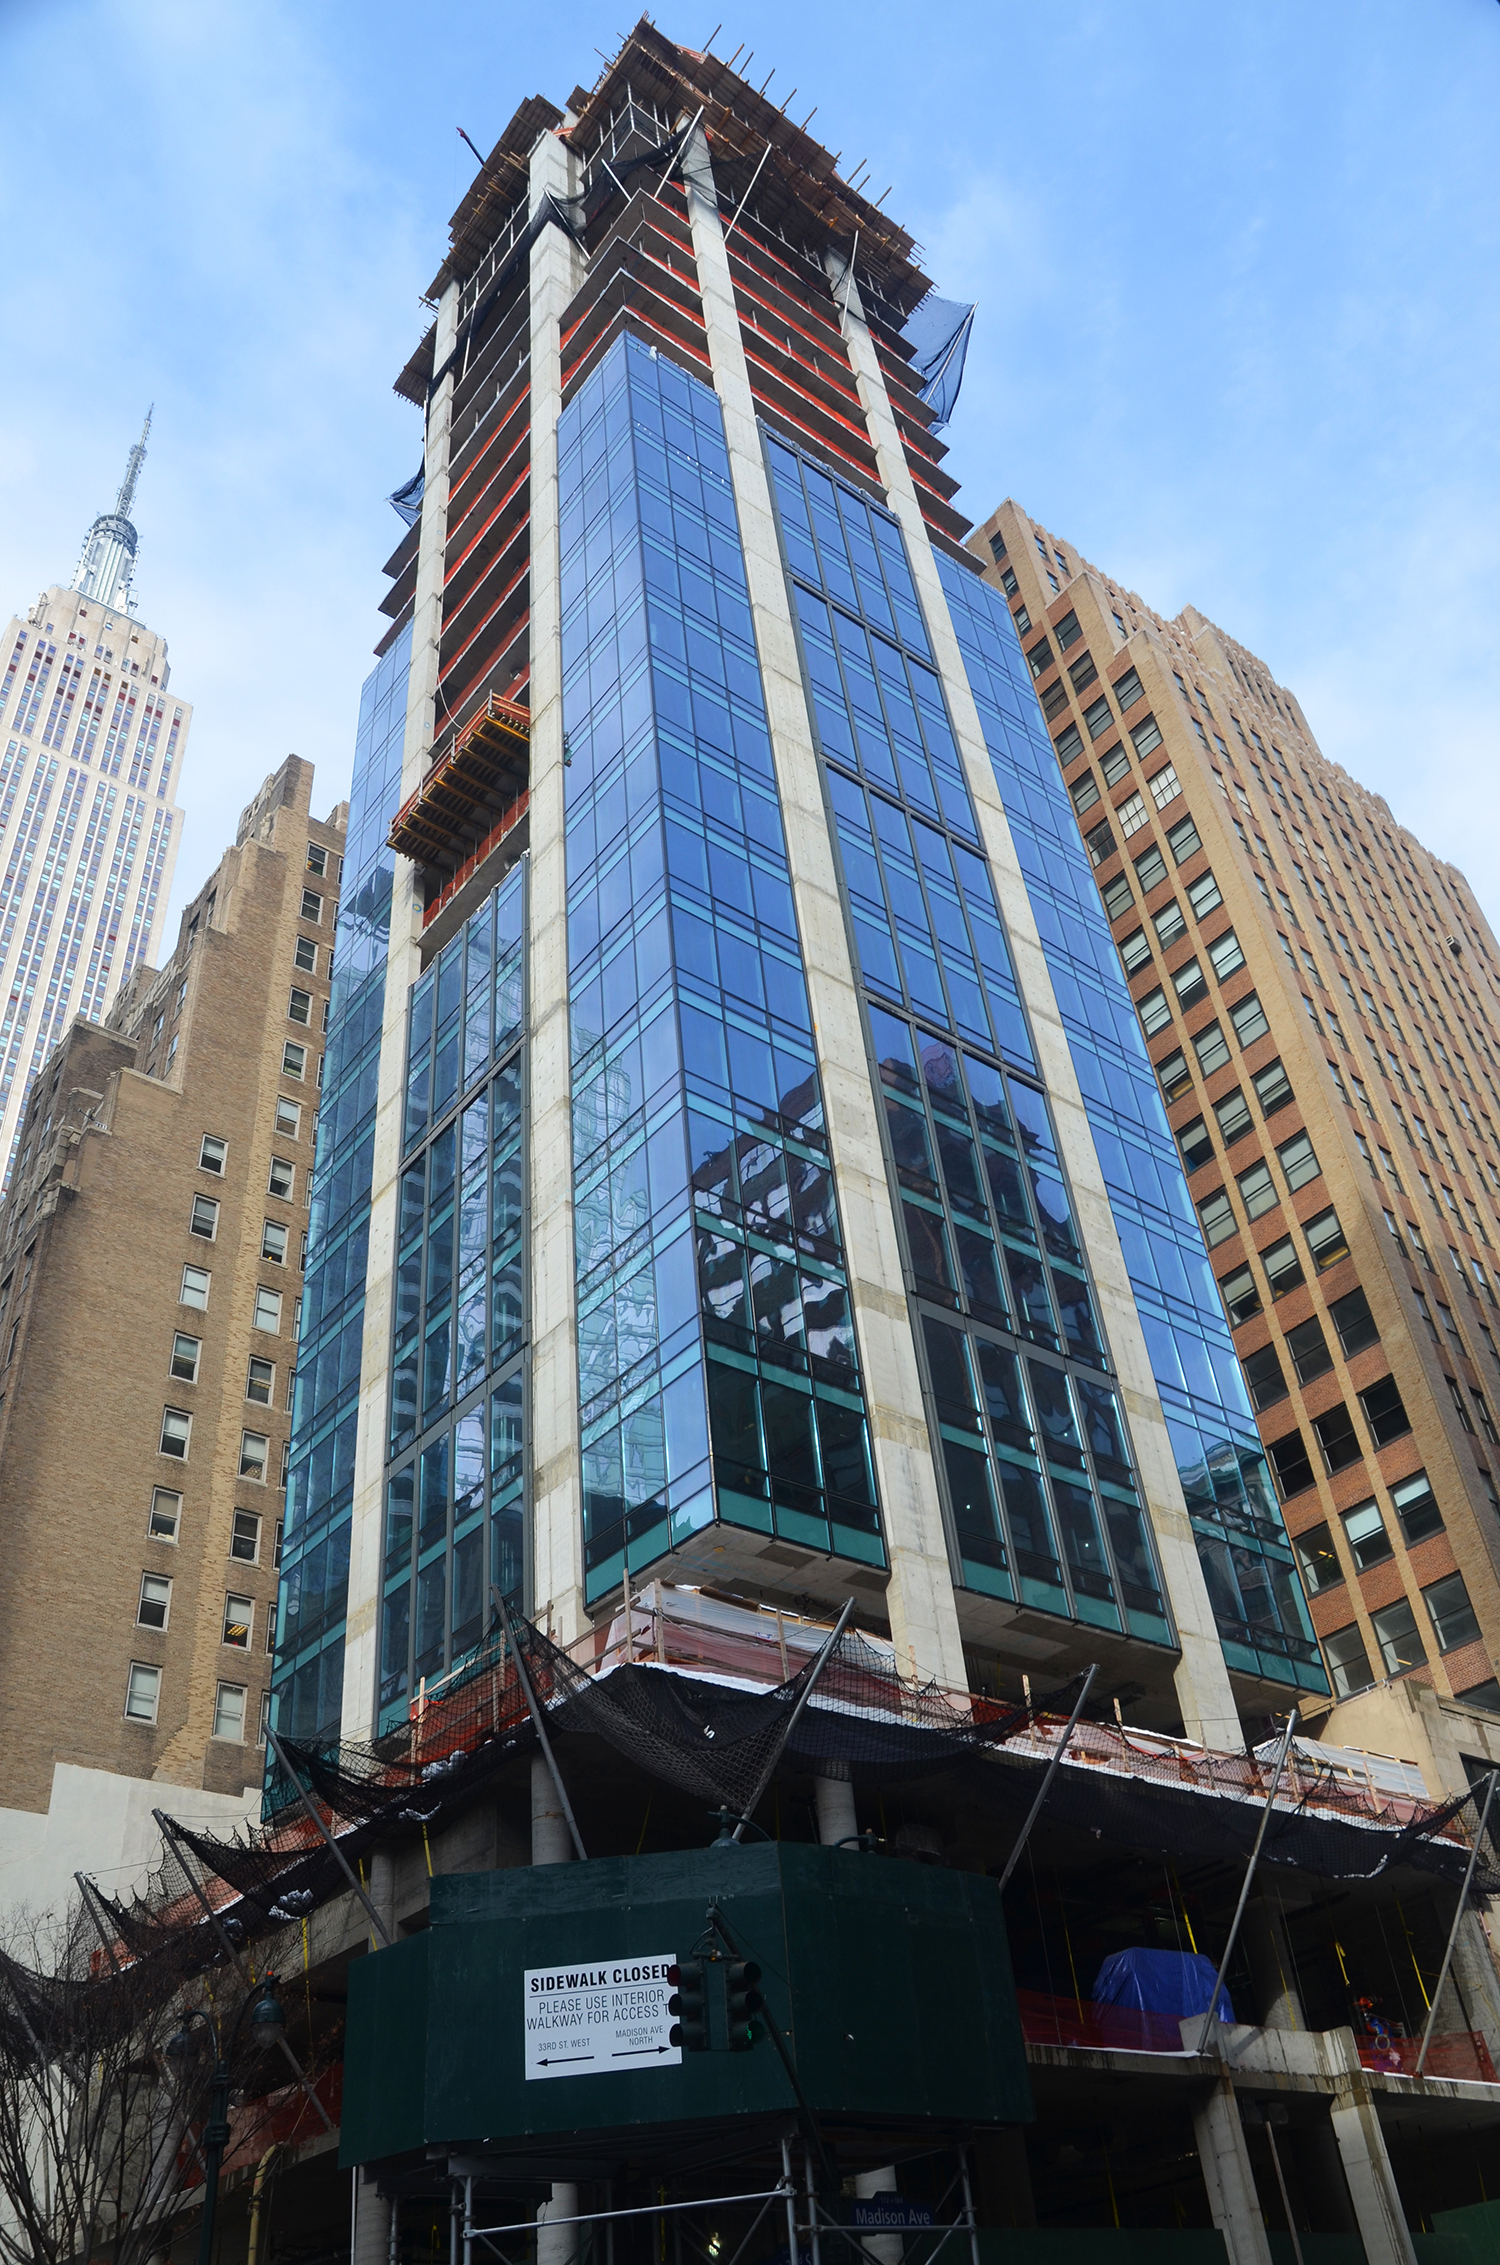 new york 172 madison avenue 137m 448ft 31 fl com page 2 skyscrapercity. Black Bedroom Furniture Sets. Home Design Ideas